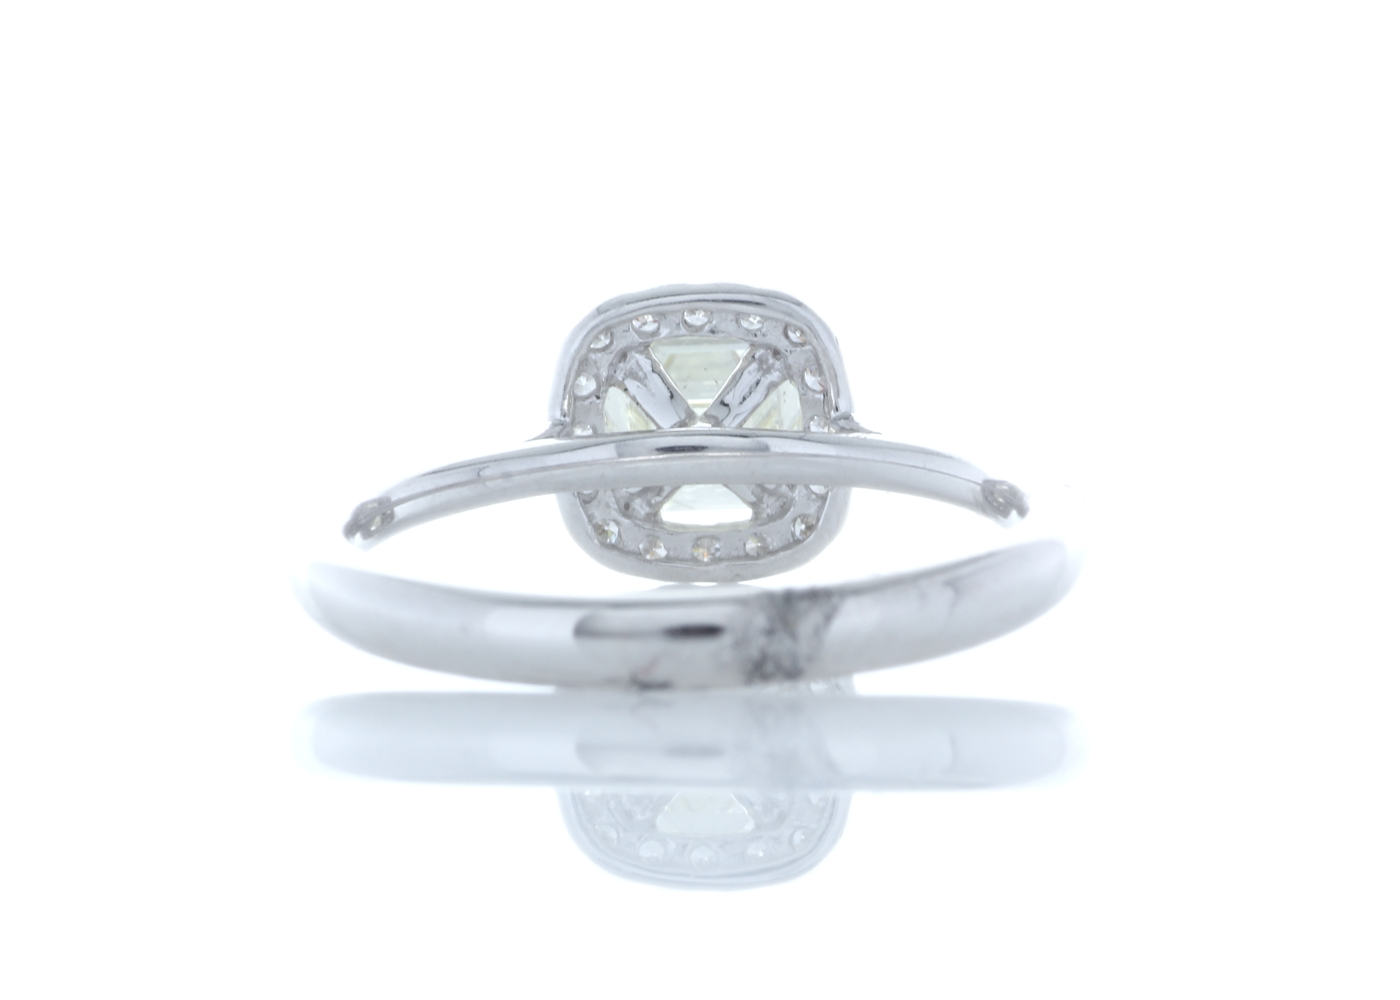 Lot 27 - 18ct White Gold Single Stone With Halo Setting Ring (1.01) 1.27 Carats